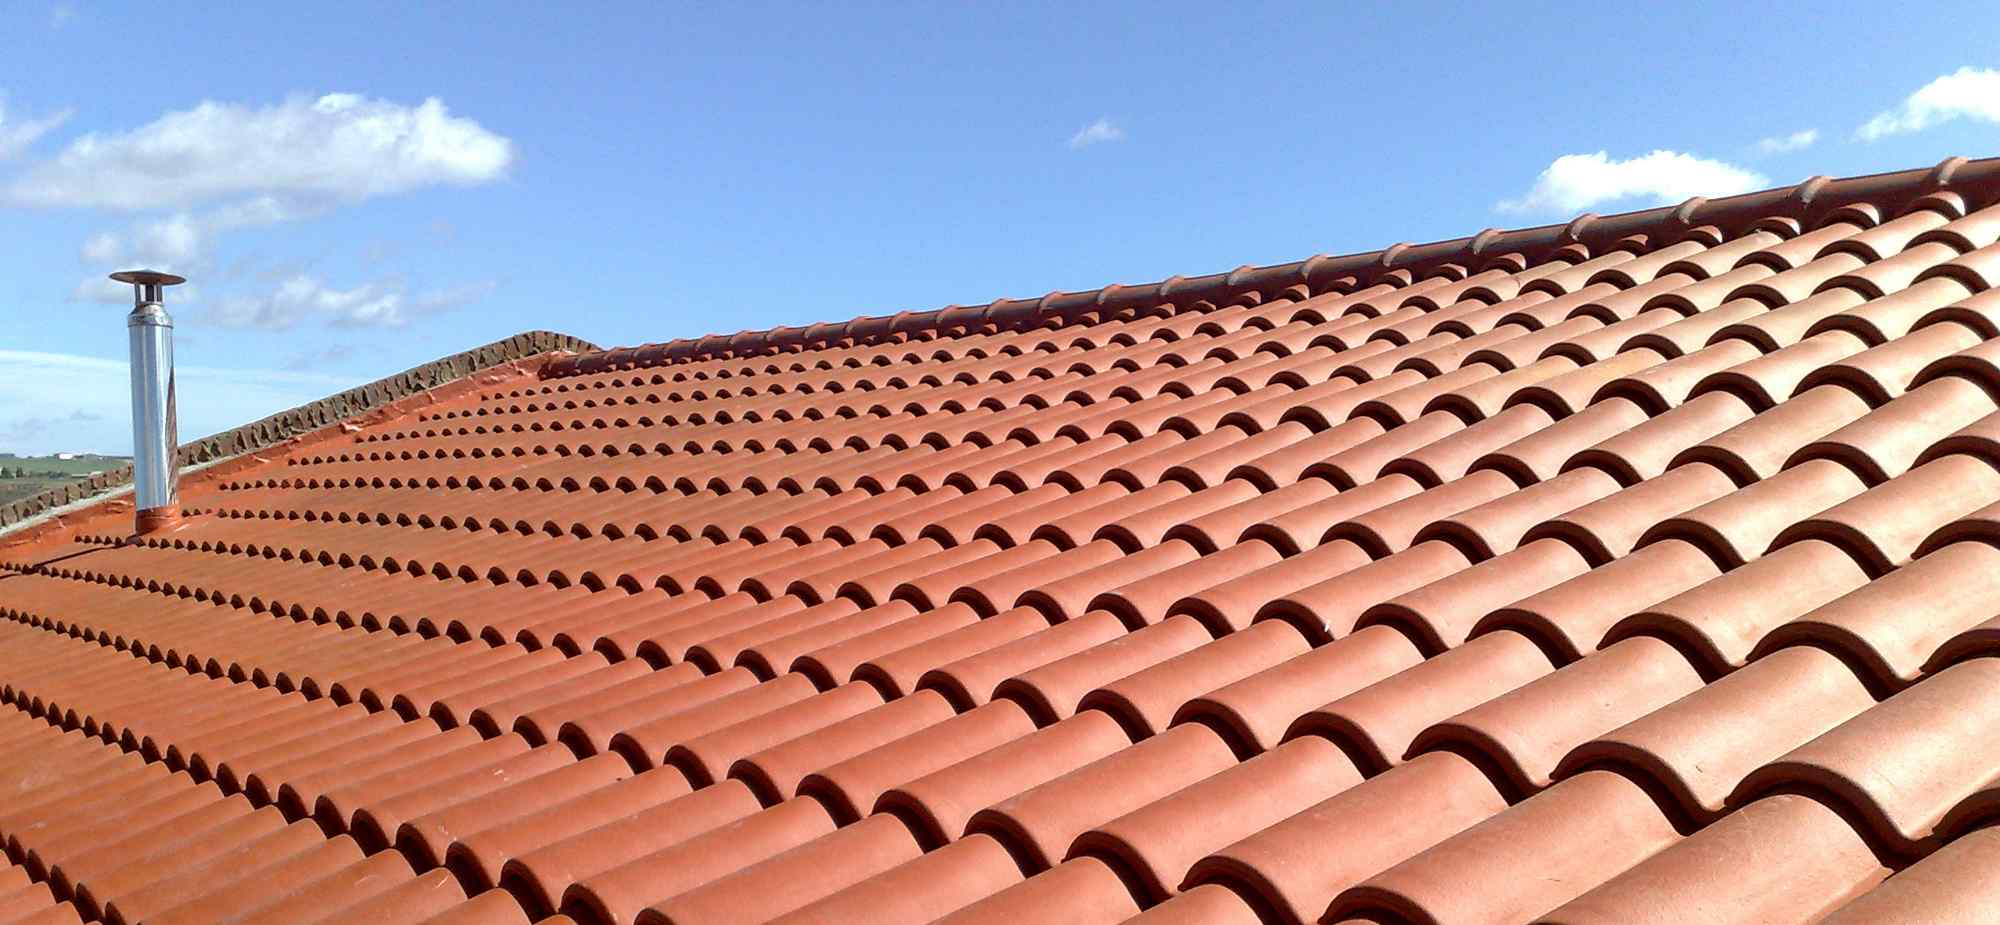 Roof Pics, Man Made Collection